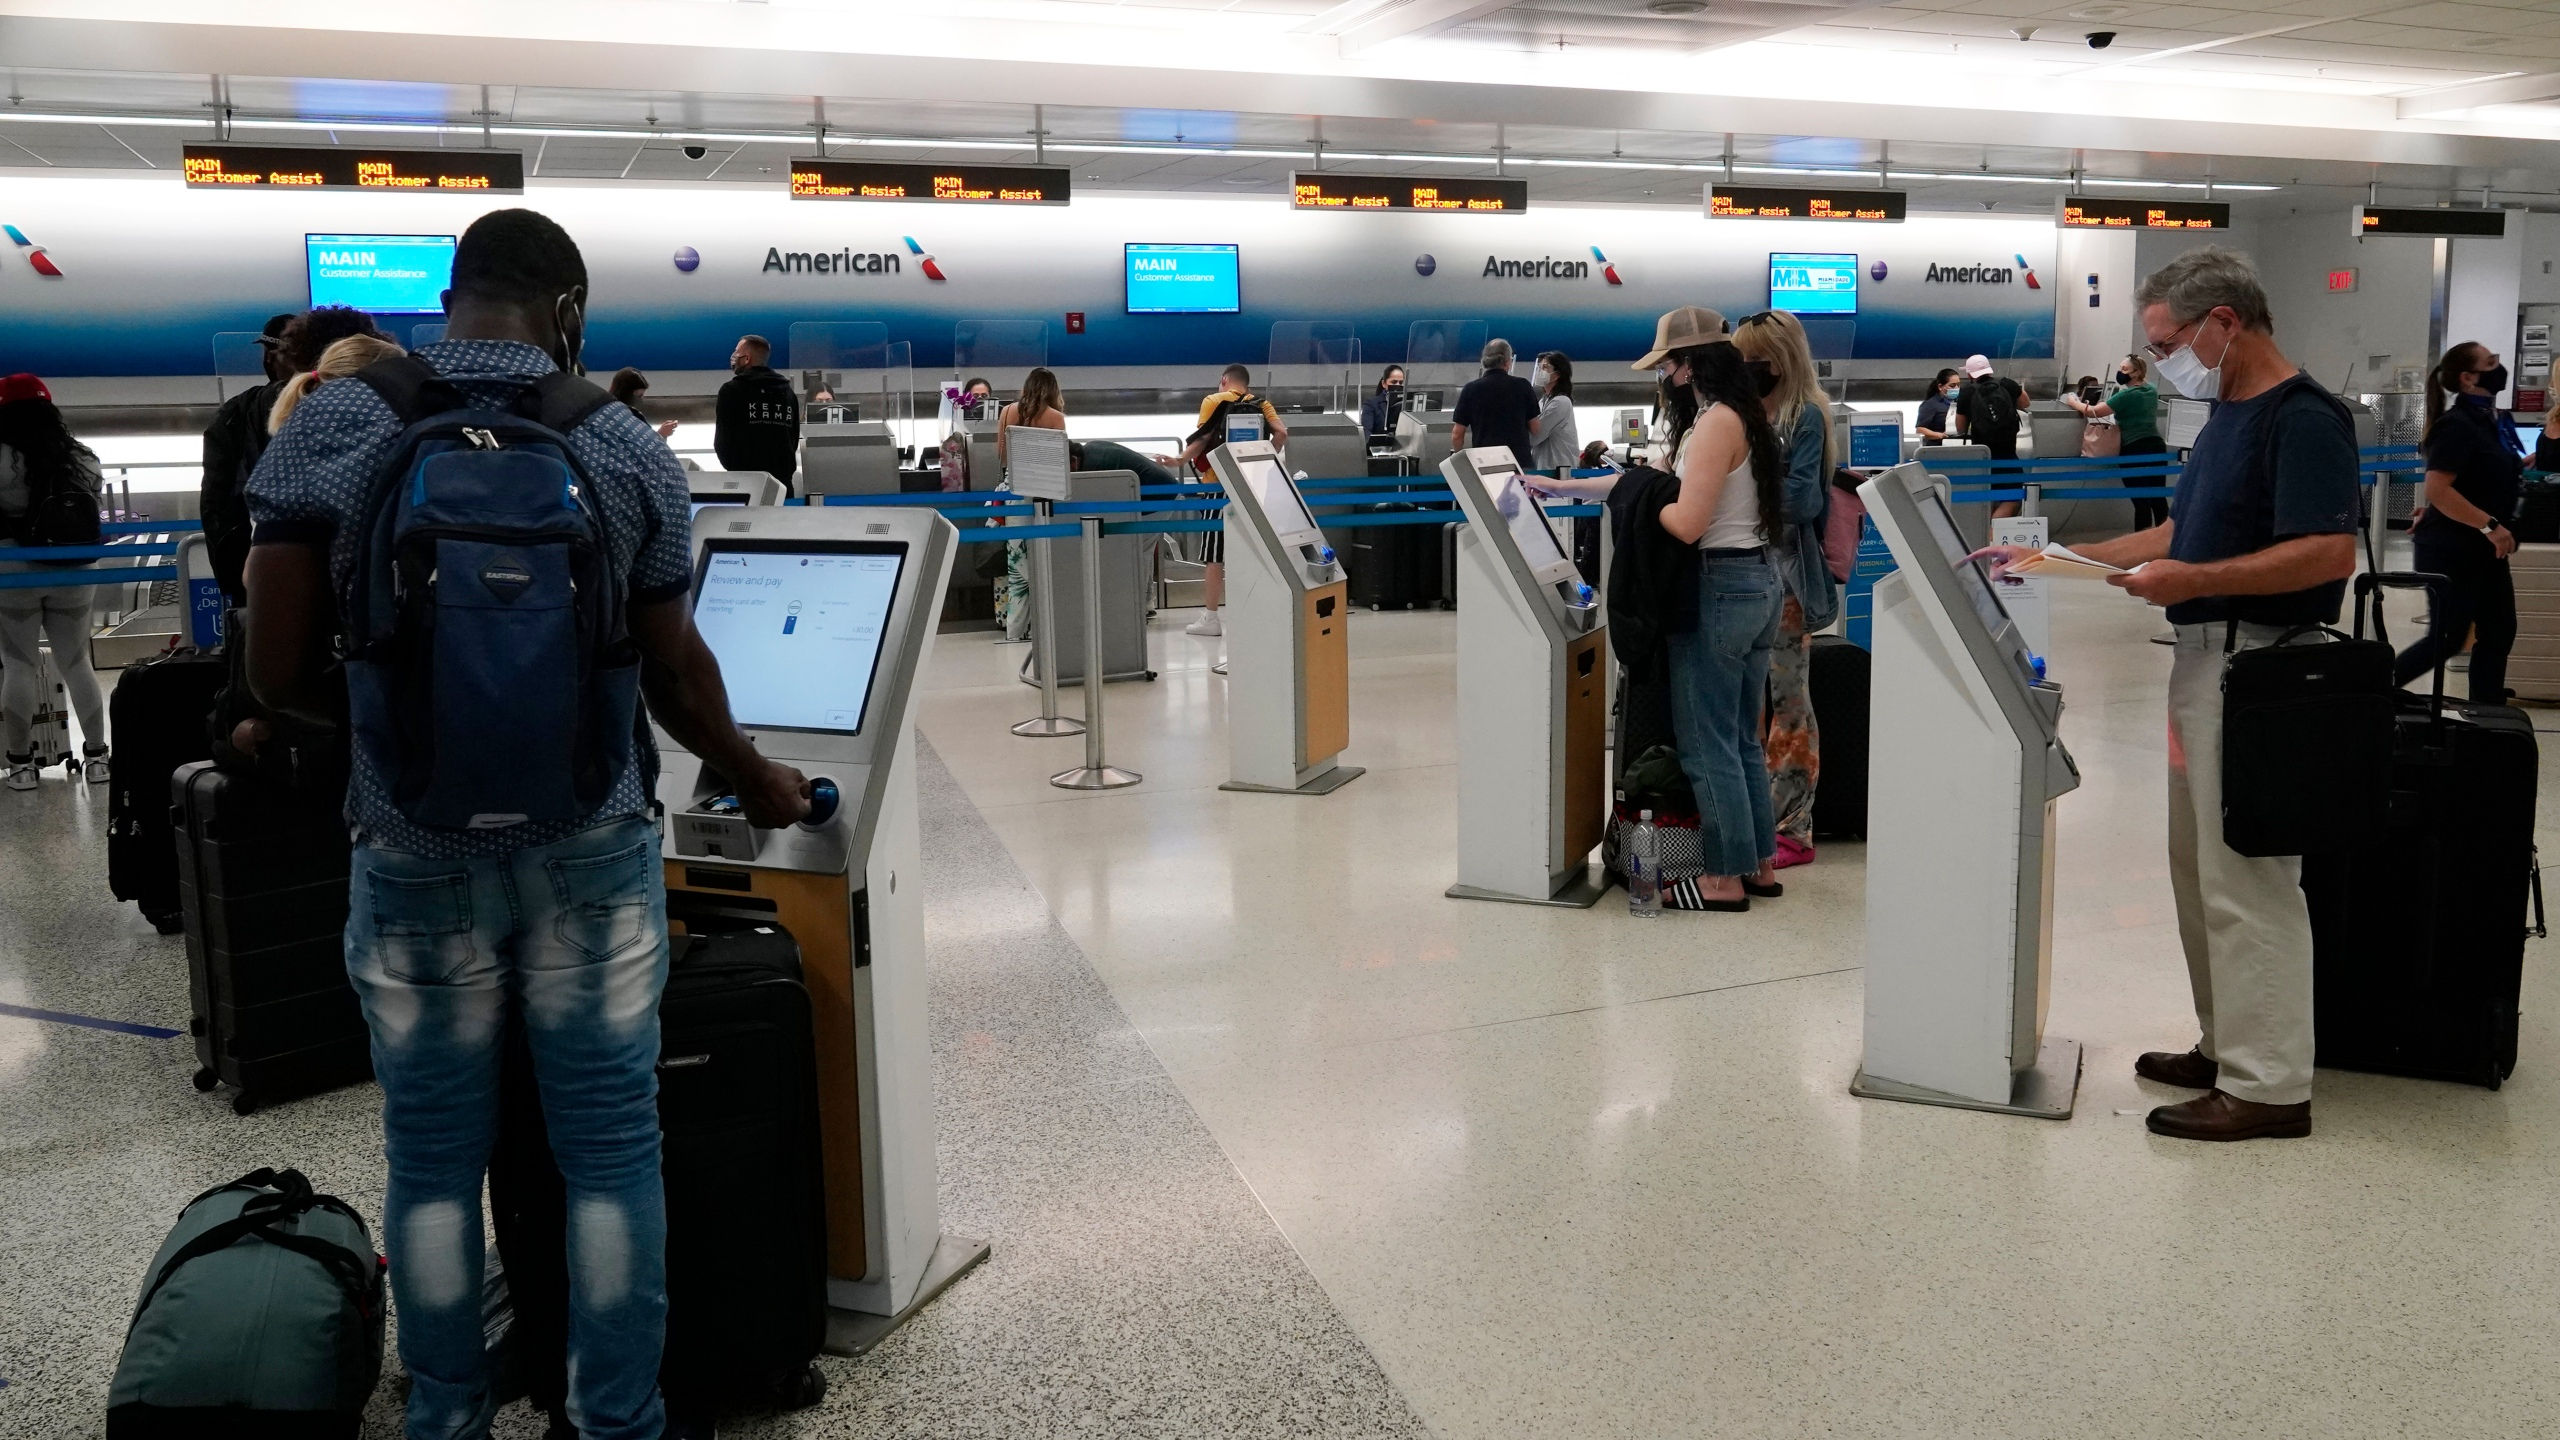 In this April 29, 2021 photo, travelers use the self-service kiosk to check in and pay for luggage at the American Airlines terminal in Miami. The Transportation Department is detailing efforts it's making to help airline customers who didn't get refunds after their flights were canceled during the early days of the pandemic last year. The department says, Friday, Sept. 10, in a new report that it investigated 20 airlines over failures to issue prompt refunds to customers, and 18 of those probes are still going on.(AP Photo/Marta Lavandier)